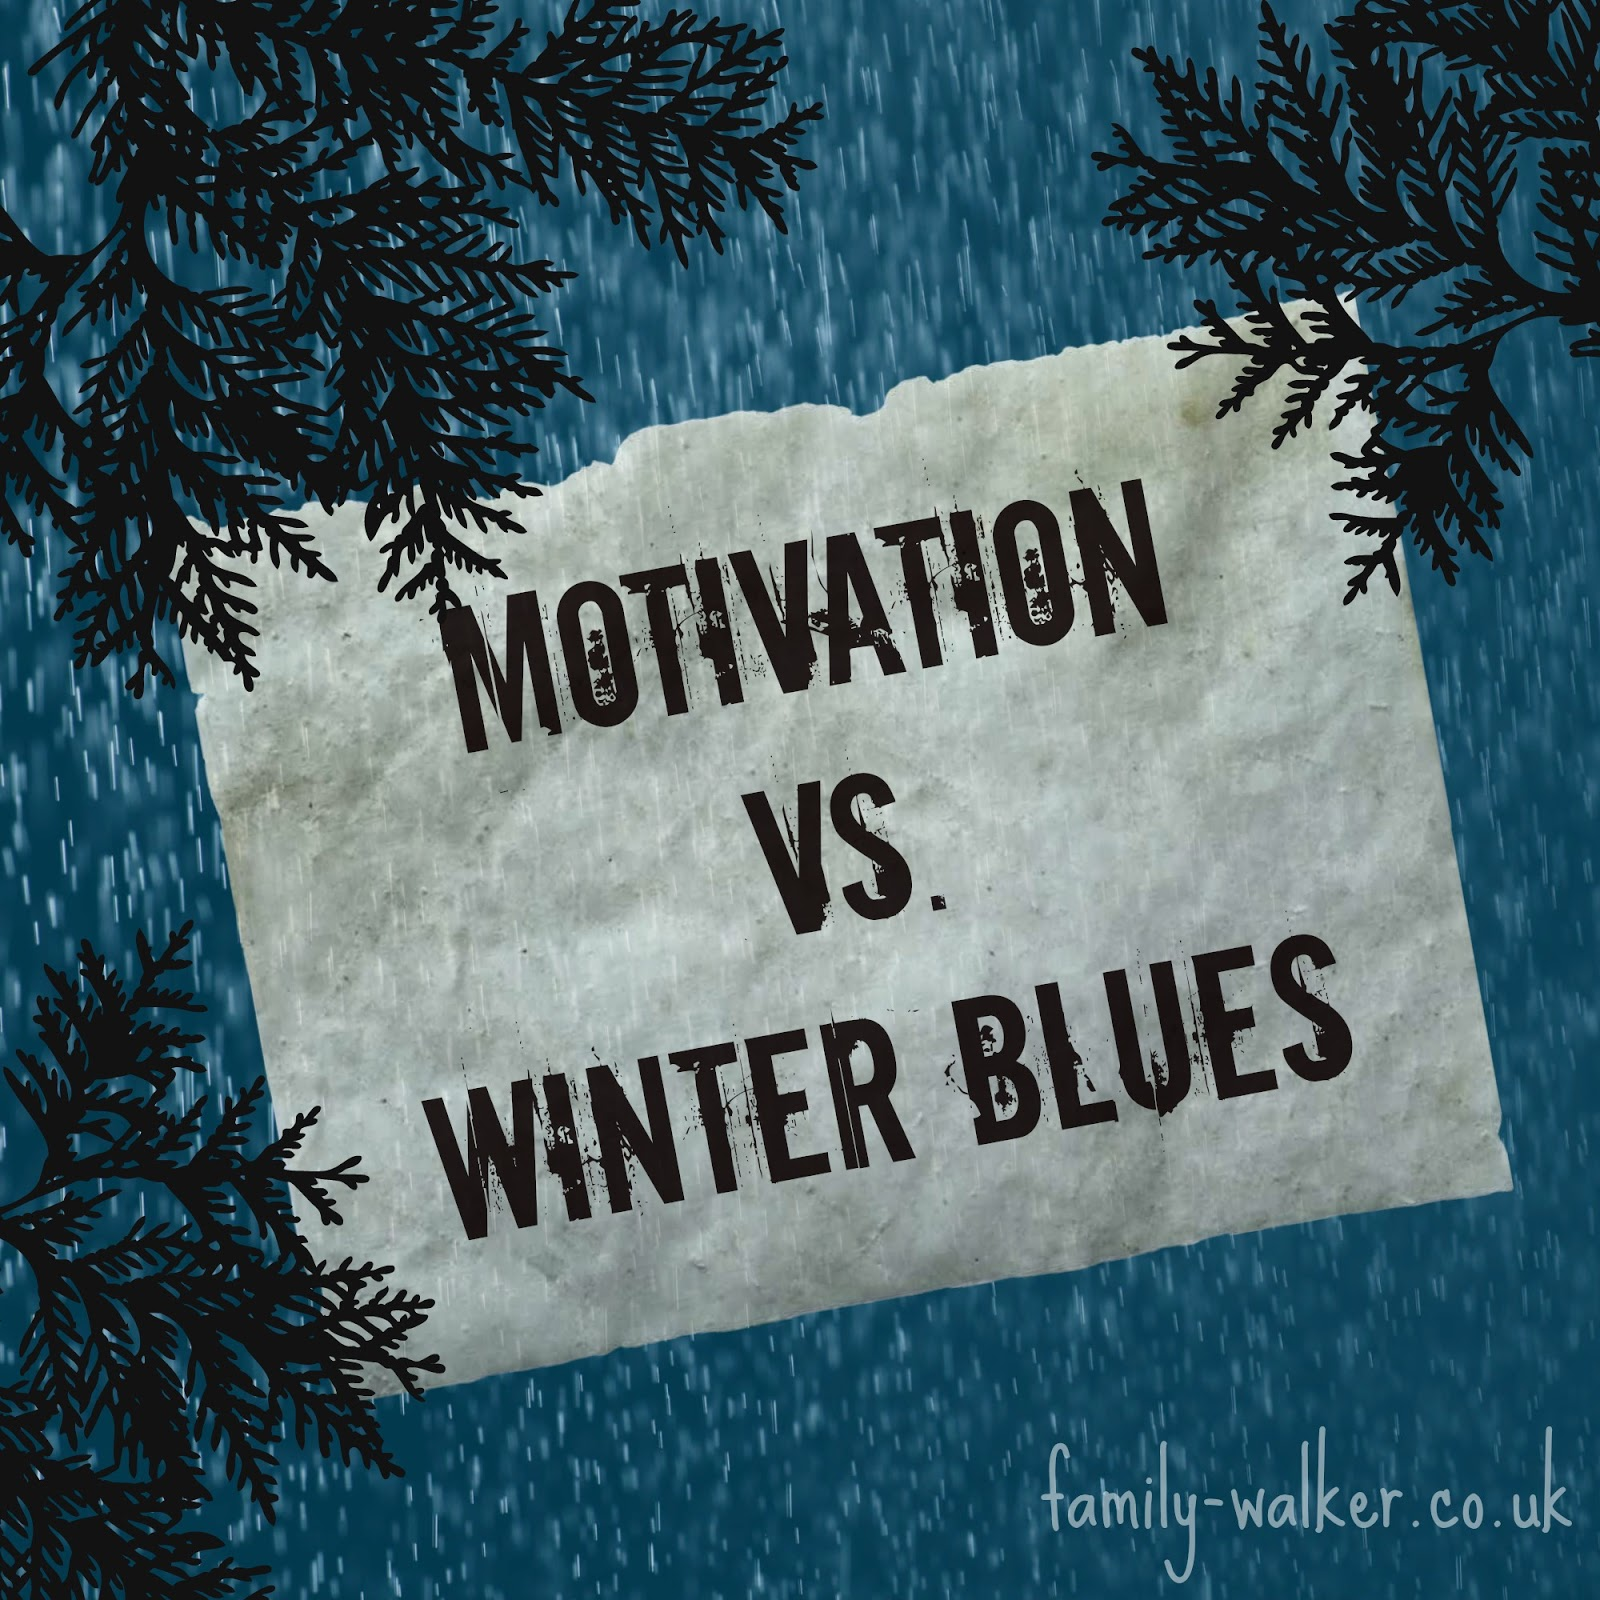 Winter Blues Vs Motivation